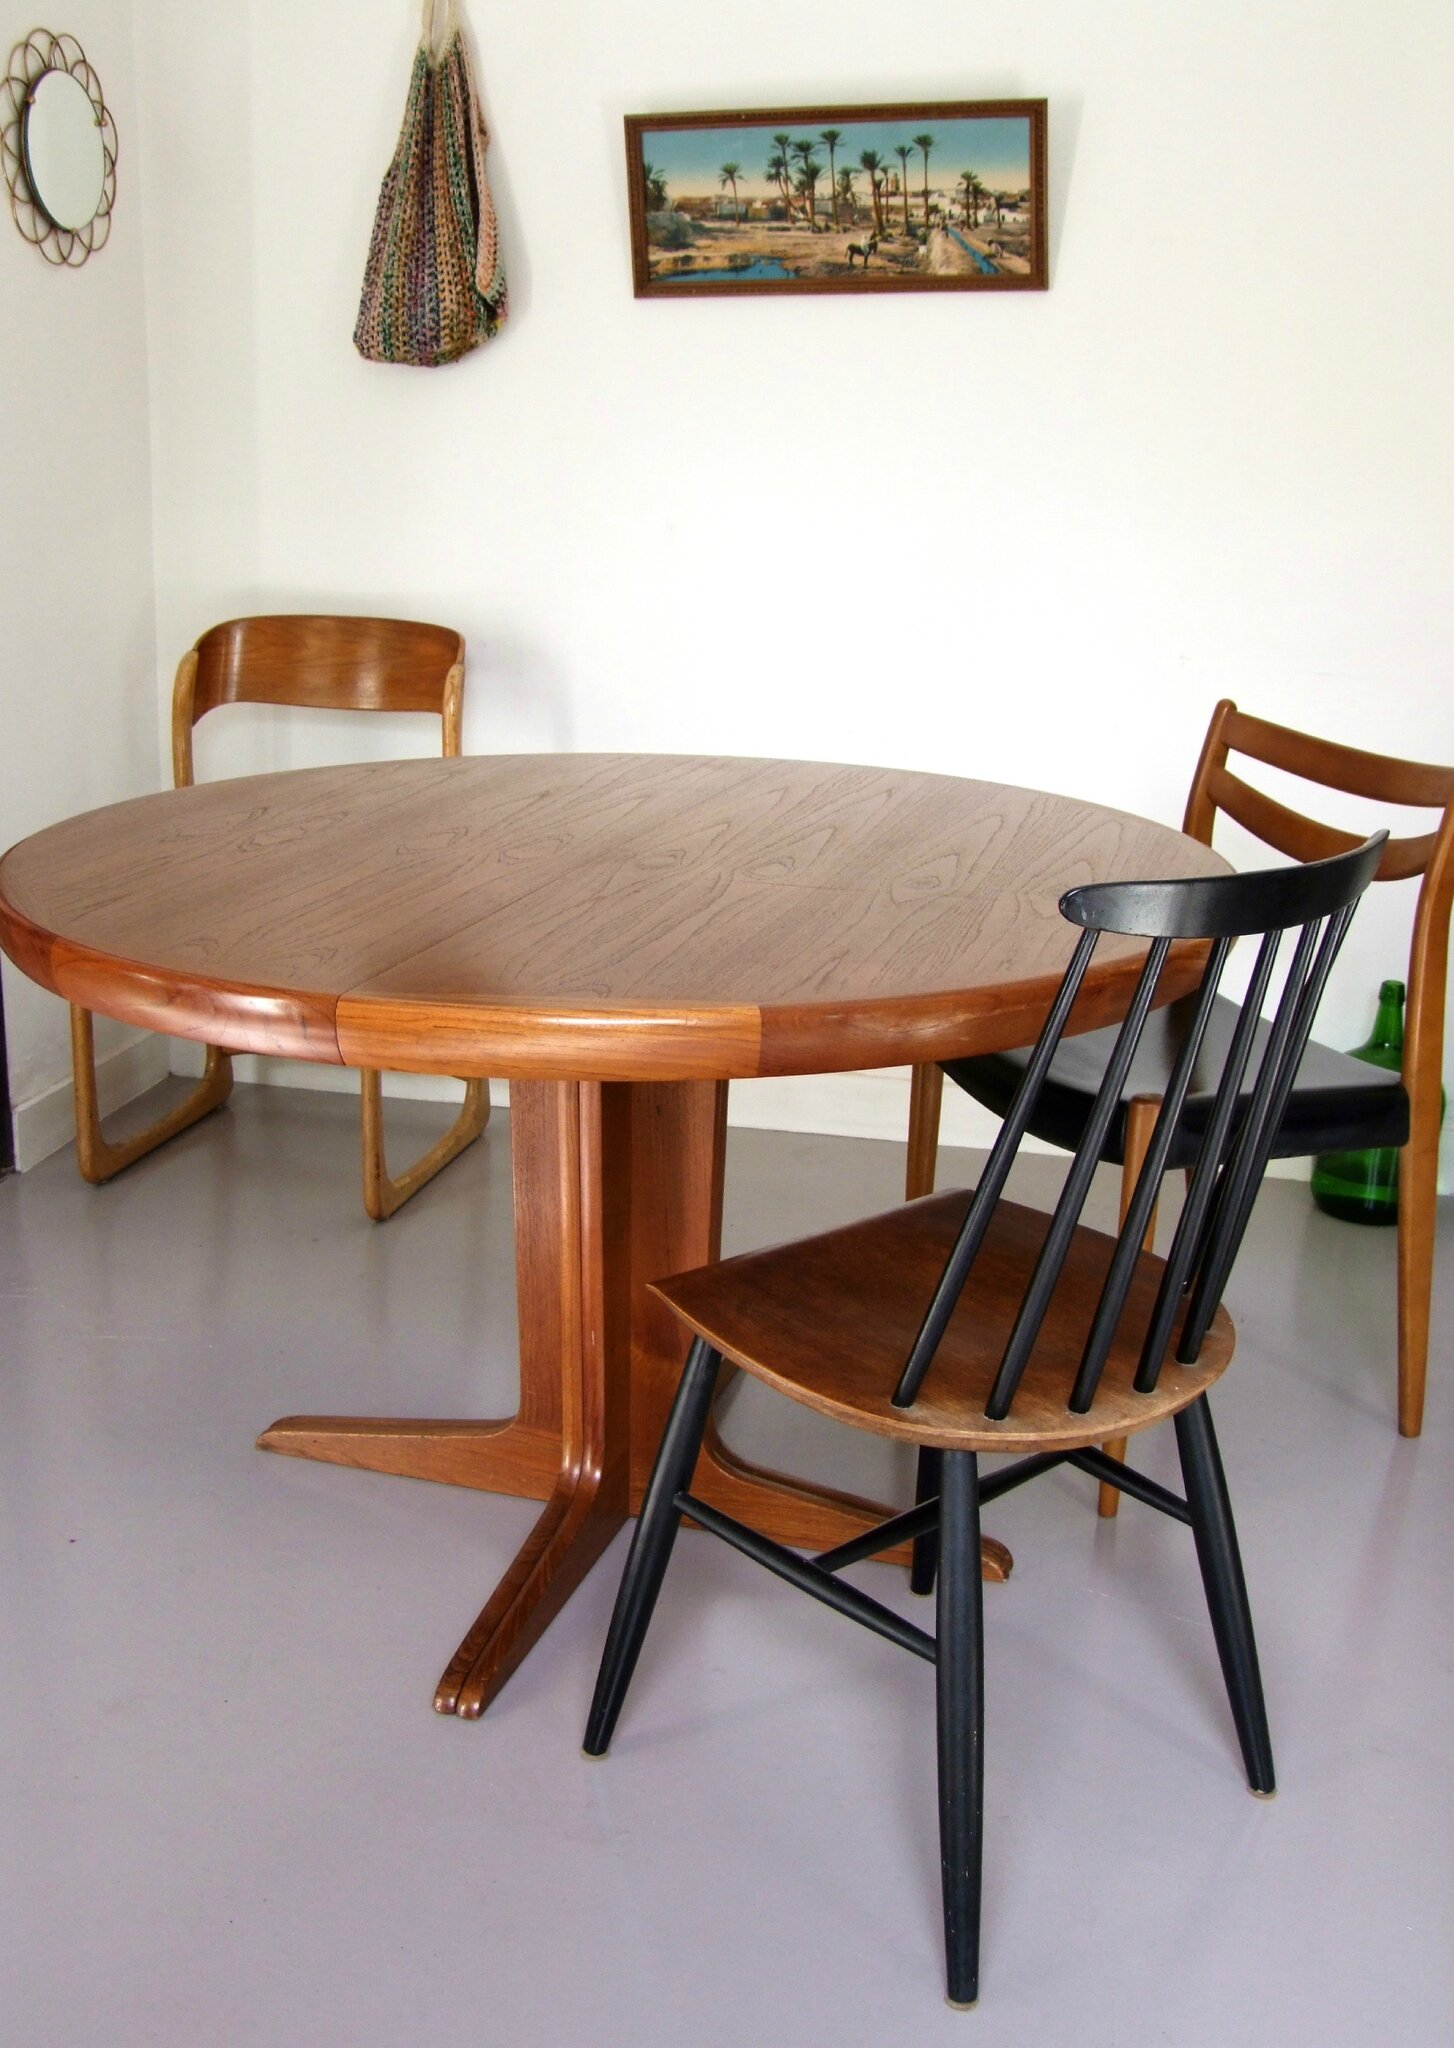 Table ronde extensible scandinave kofod meubles vintage for Table ronde extensible style scandinave